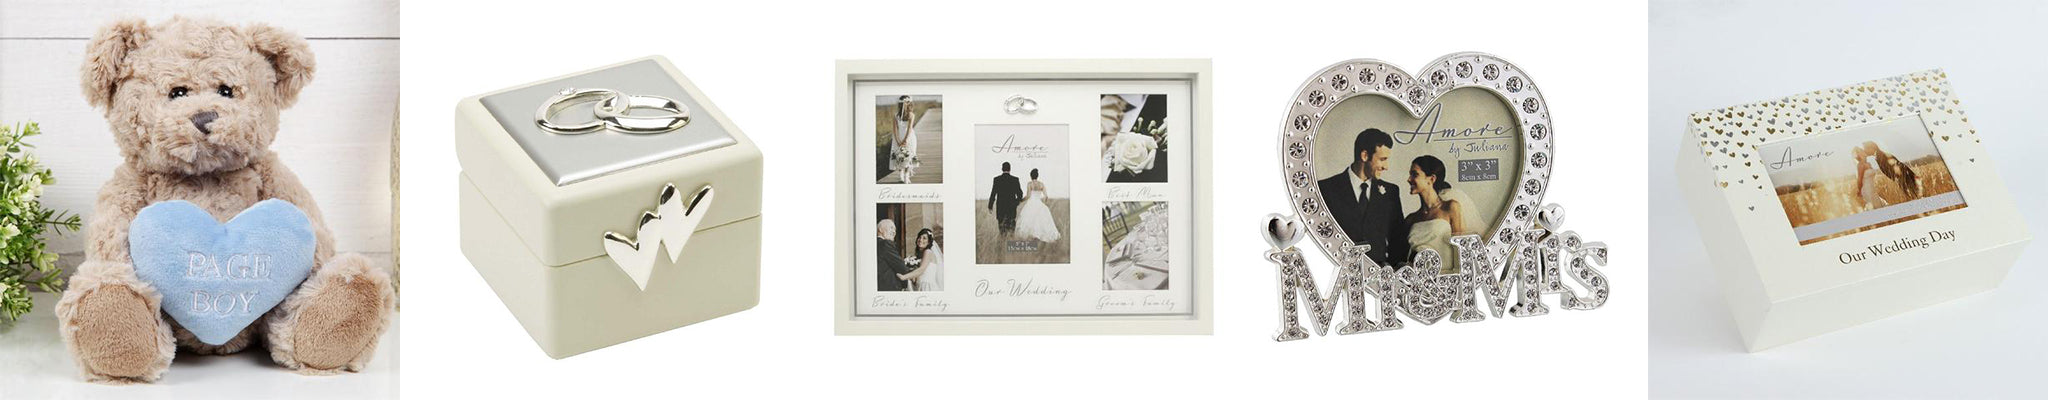 wedding anniversary gifts by Amore by Juliana, perfect wedding gift ideas